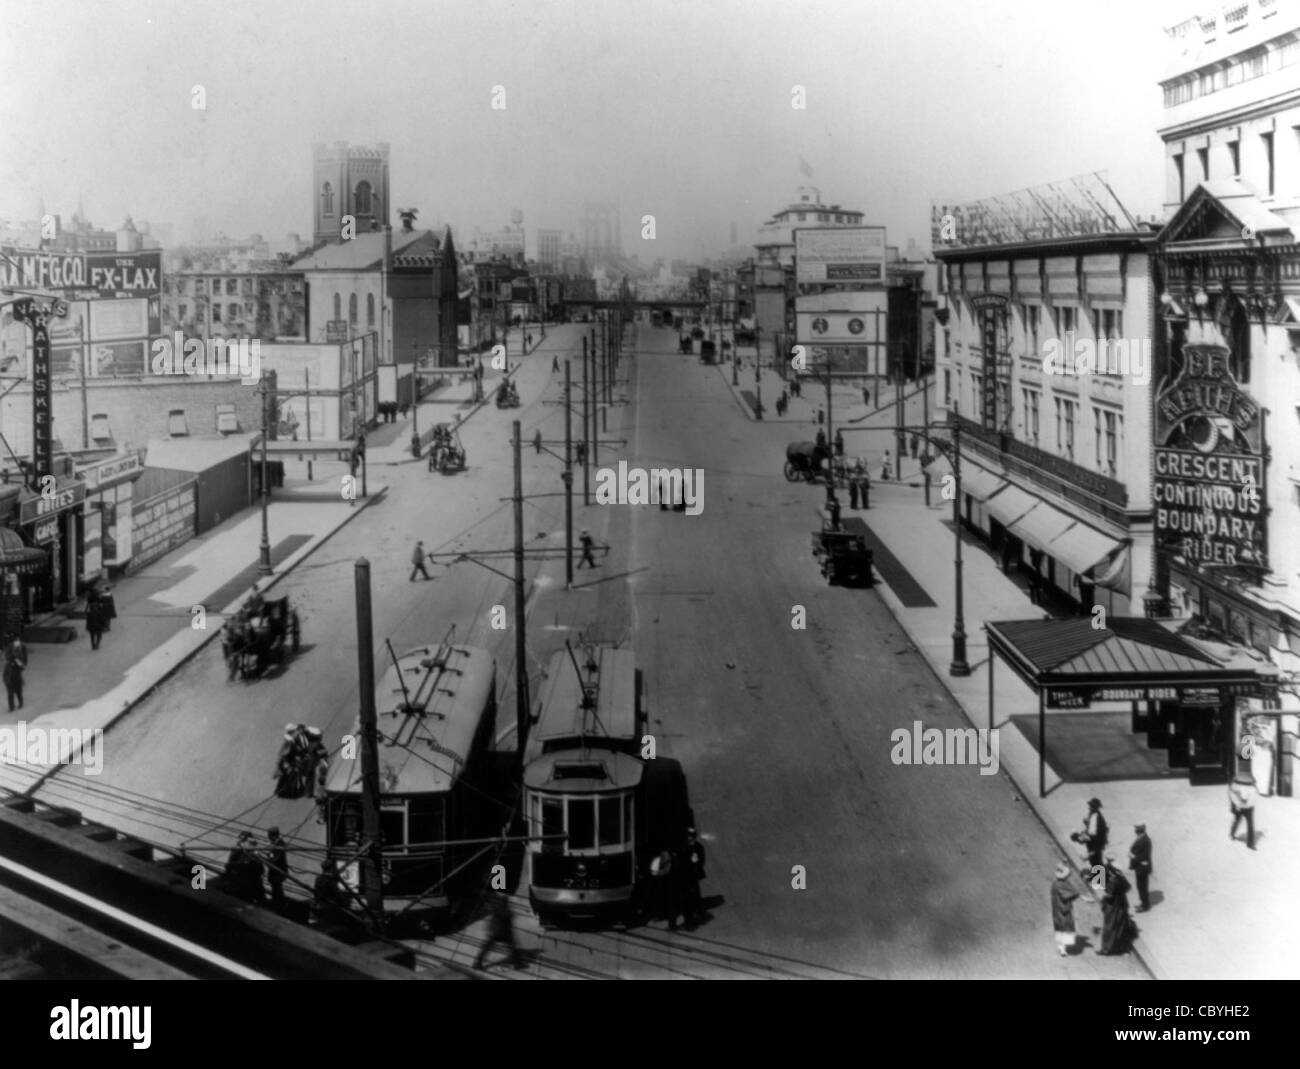 Flatbush Ave, Brooklyn -  Bird's eye view with 2 streetcars in foreground, RKO Keith's Crescent theater - Stock Image